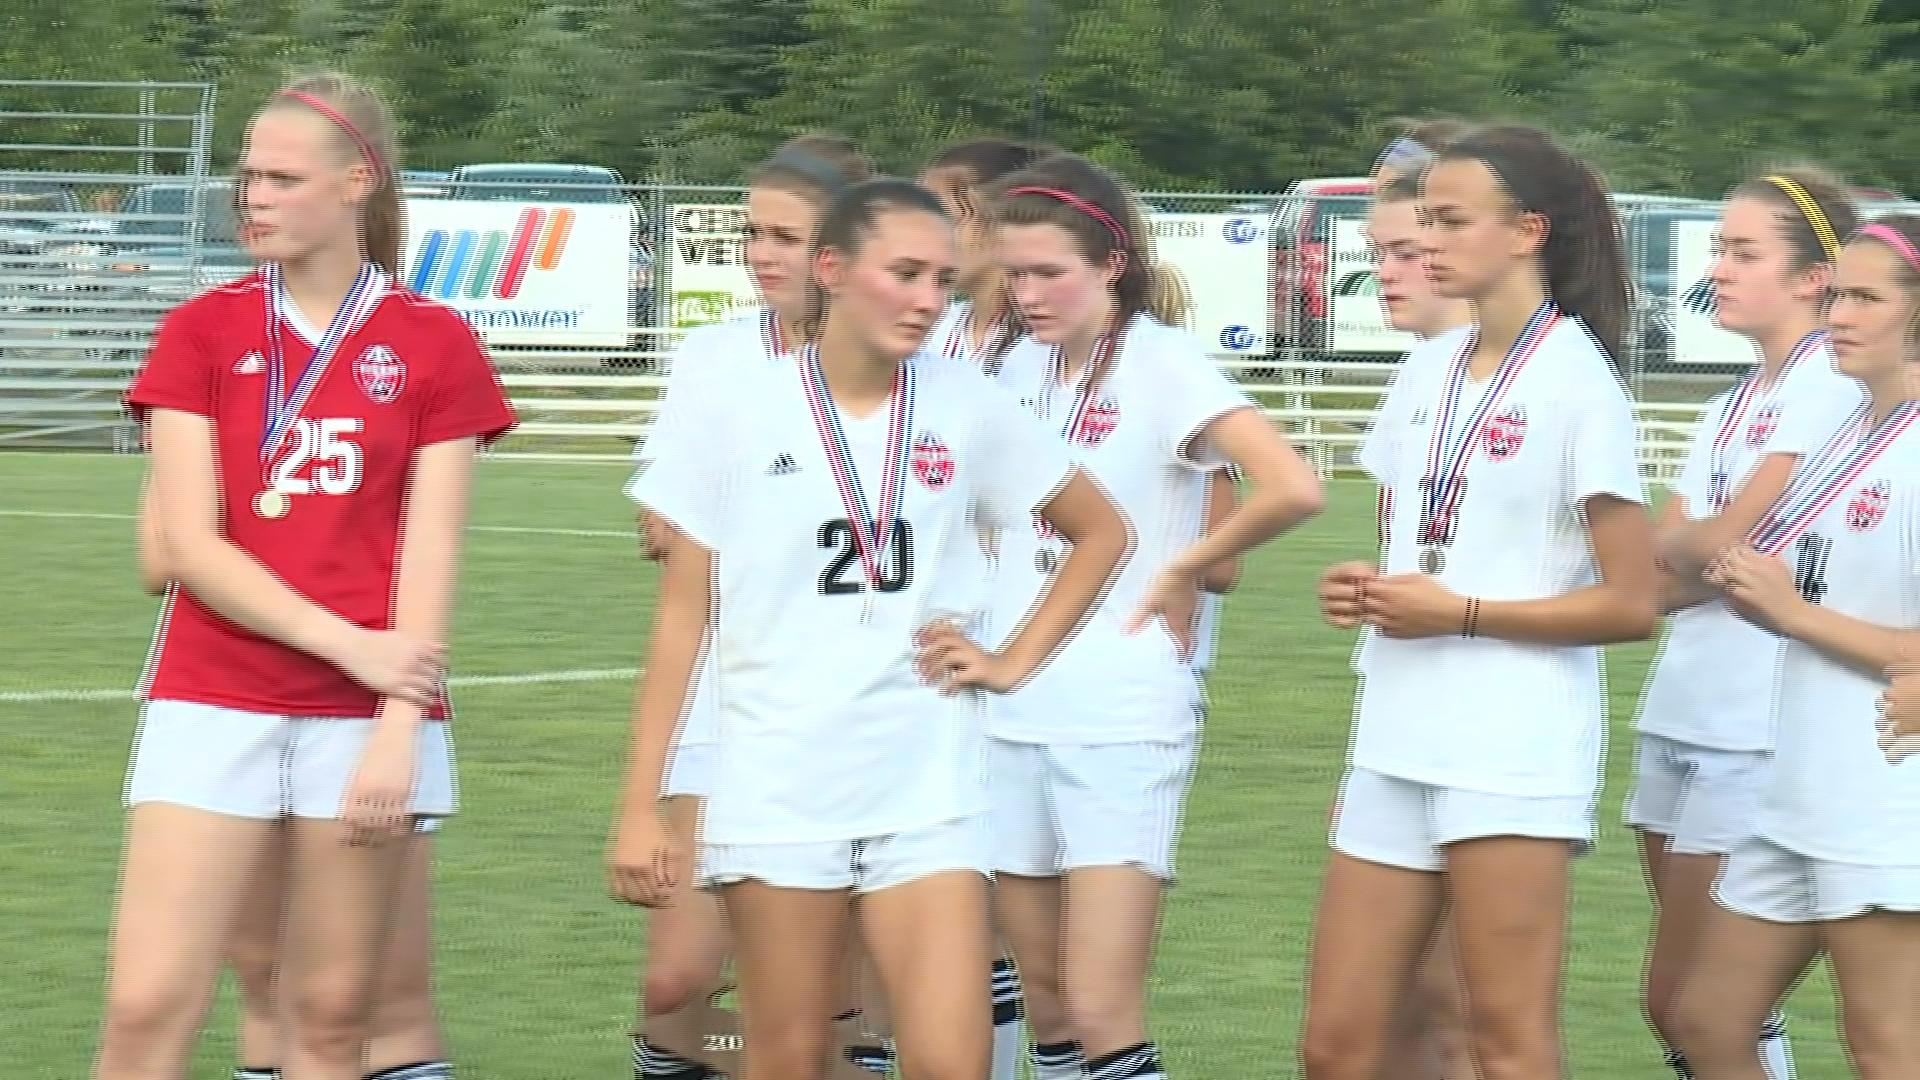 Grand Blanc girls soccer team accepts their medals as the state runner up after a loss in the state championship game.